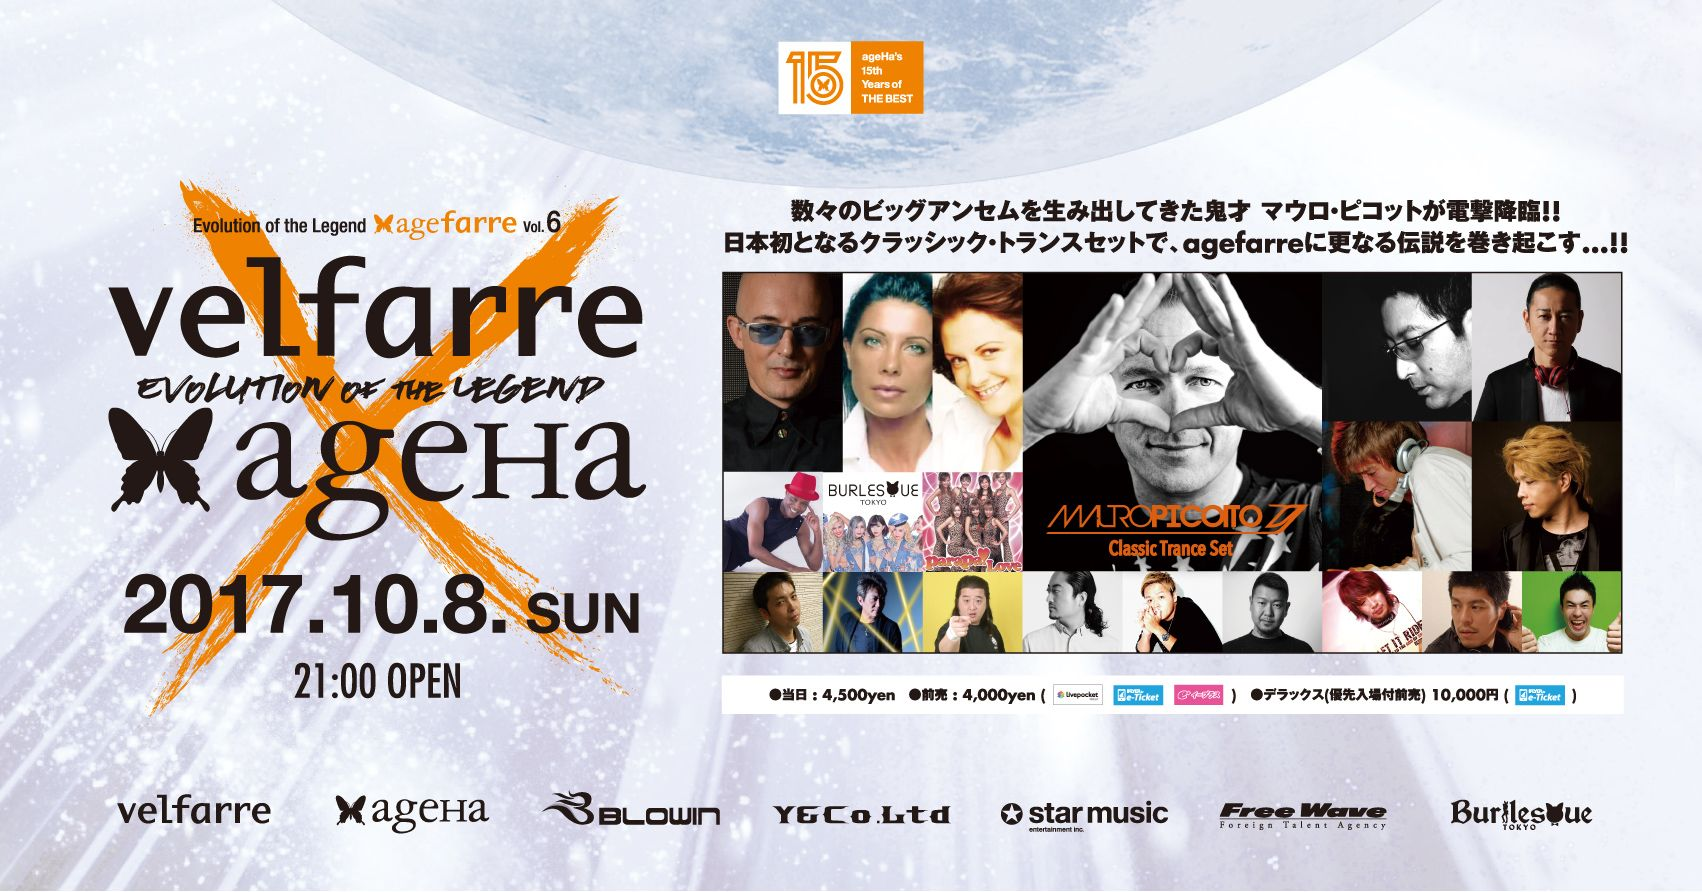 velfarre × ageHa ~Evolution of the Legend agefarre vol.6~